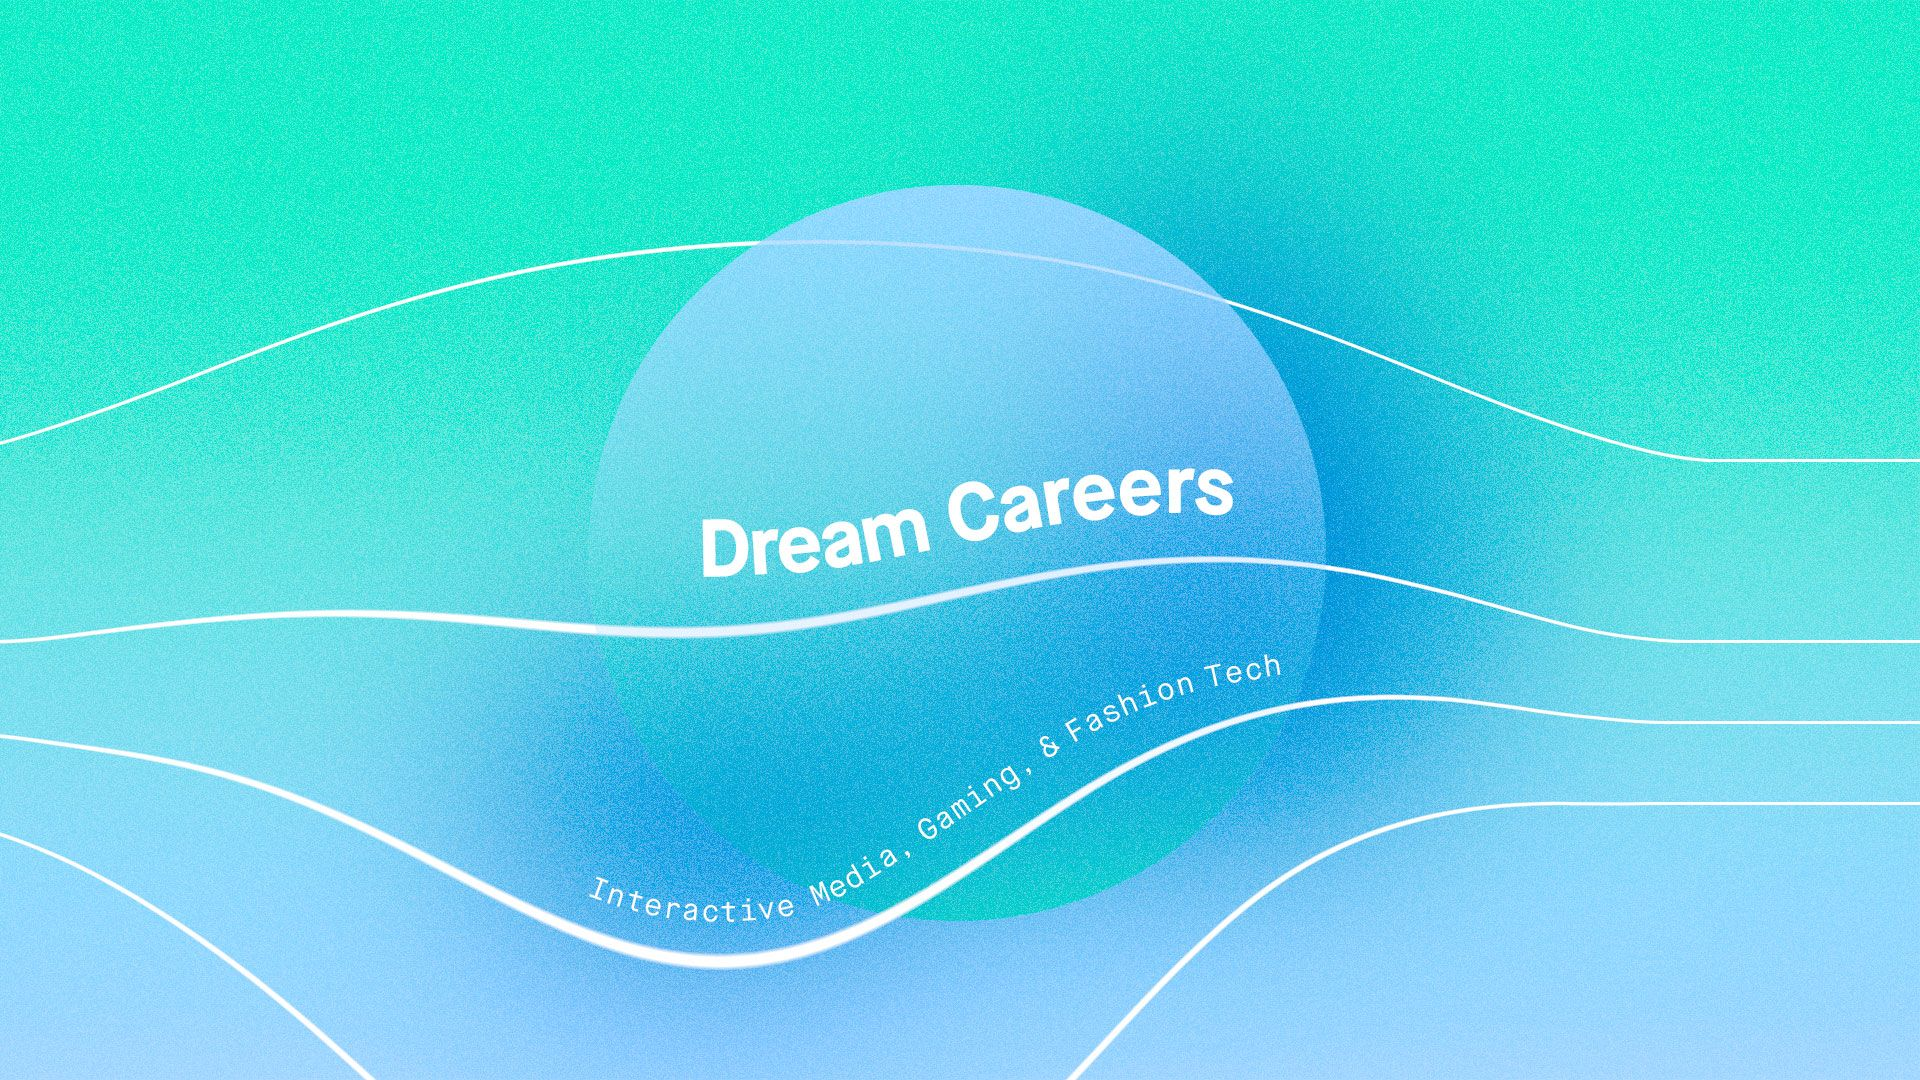 Dream Careers Four Decades In Interactive Media Gaming Fashion Tech